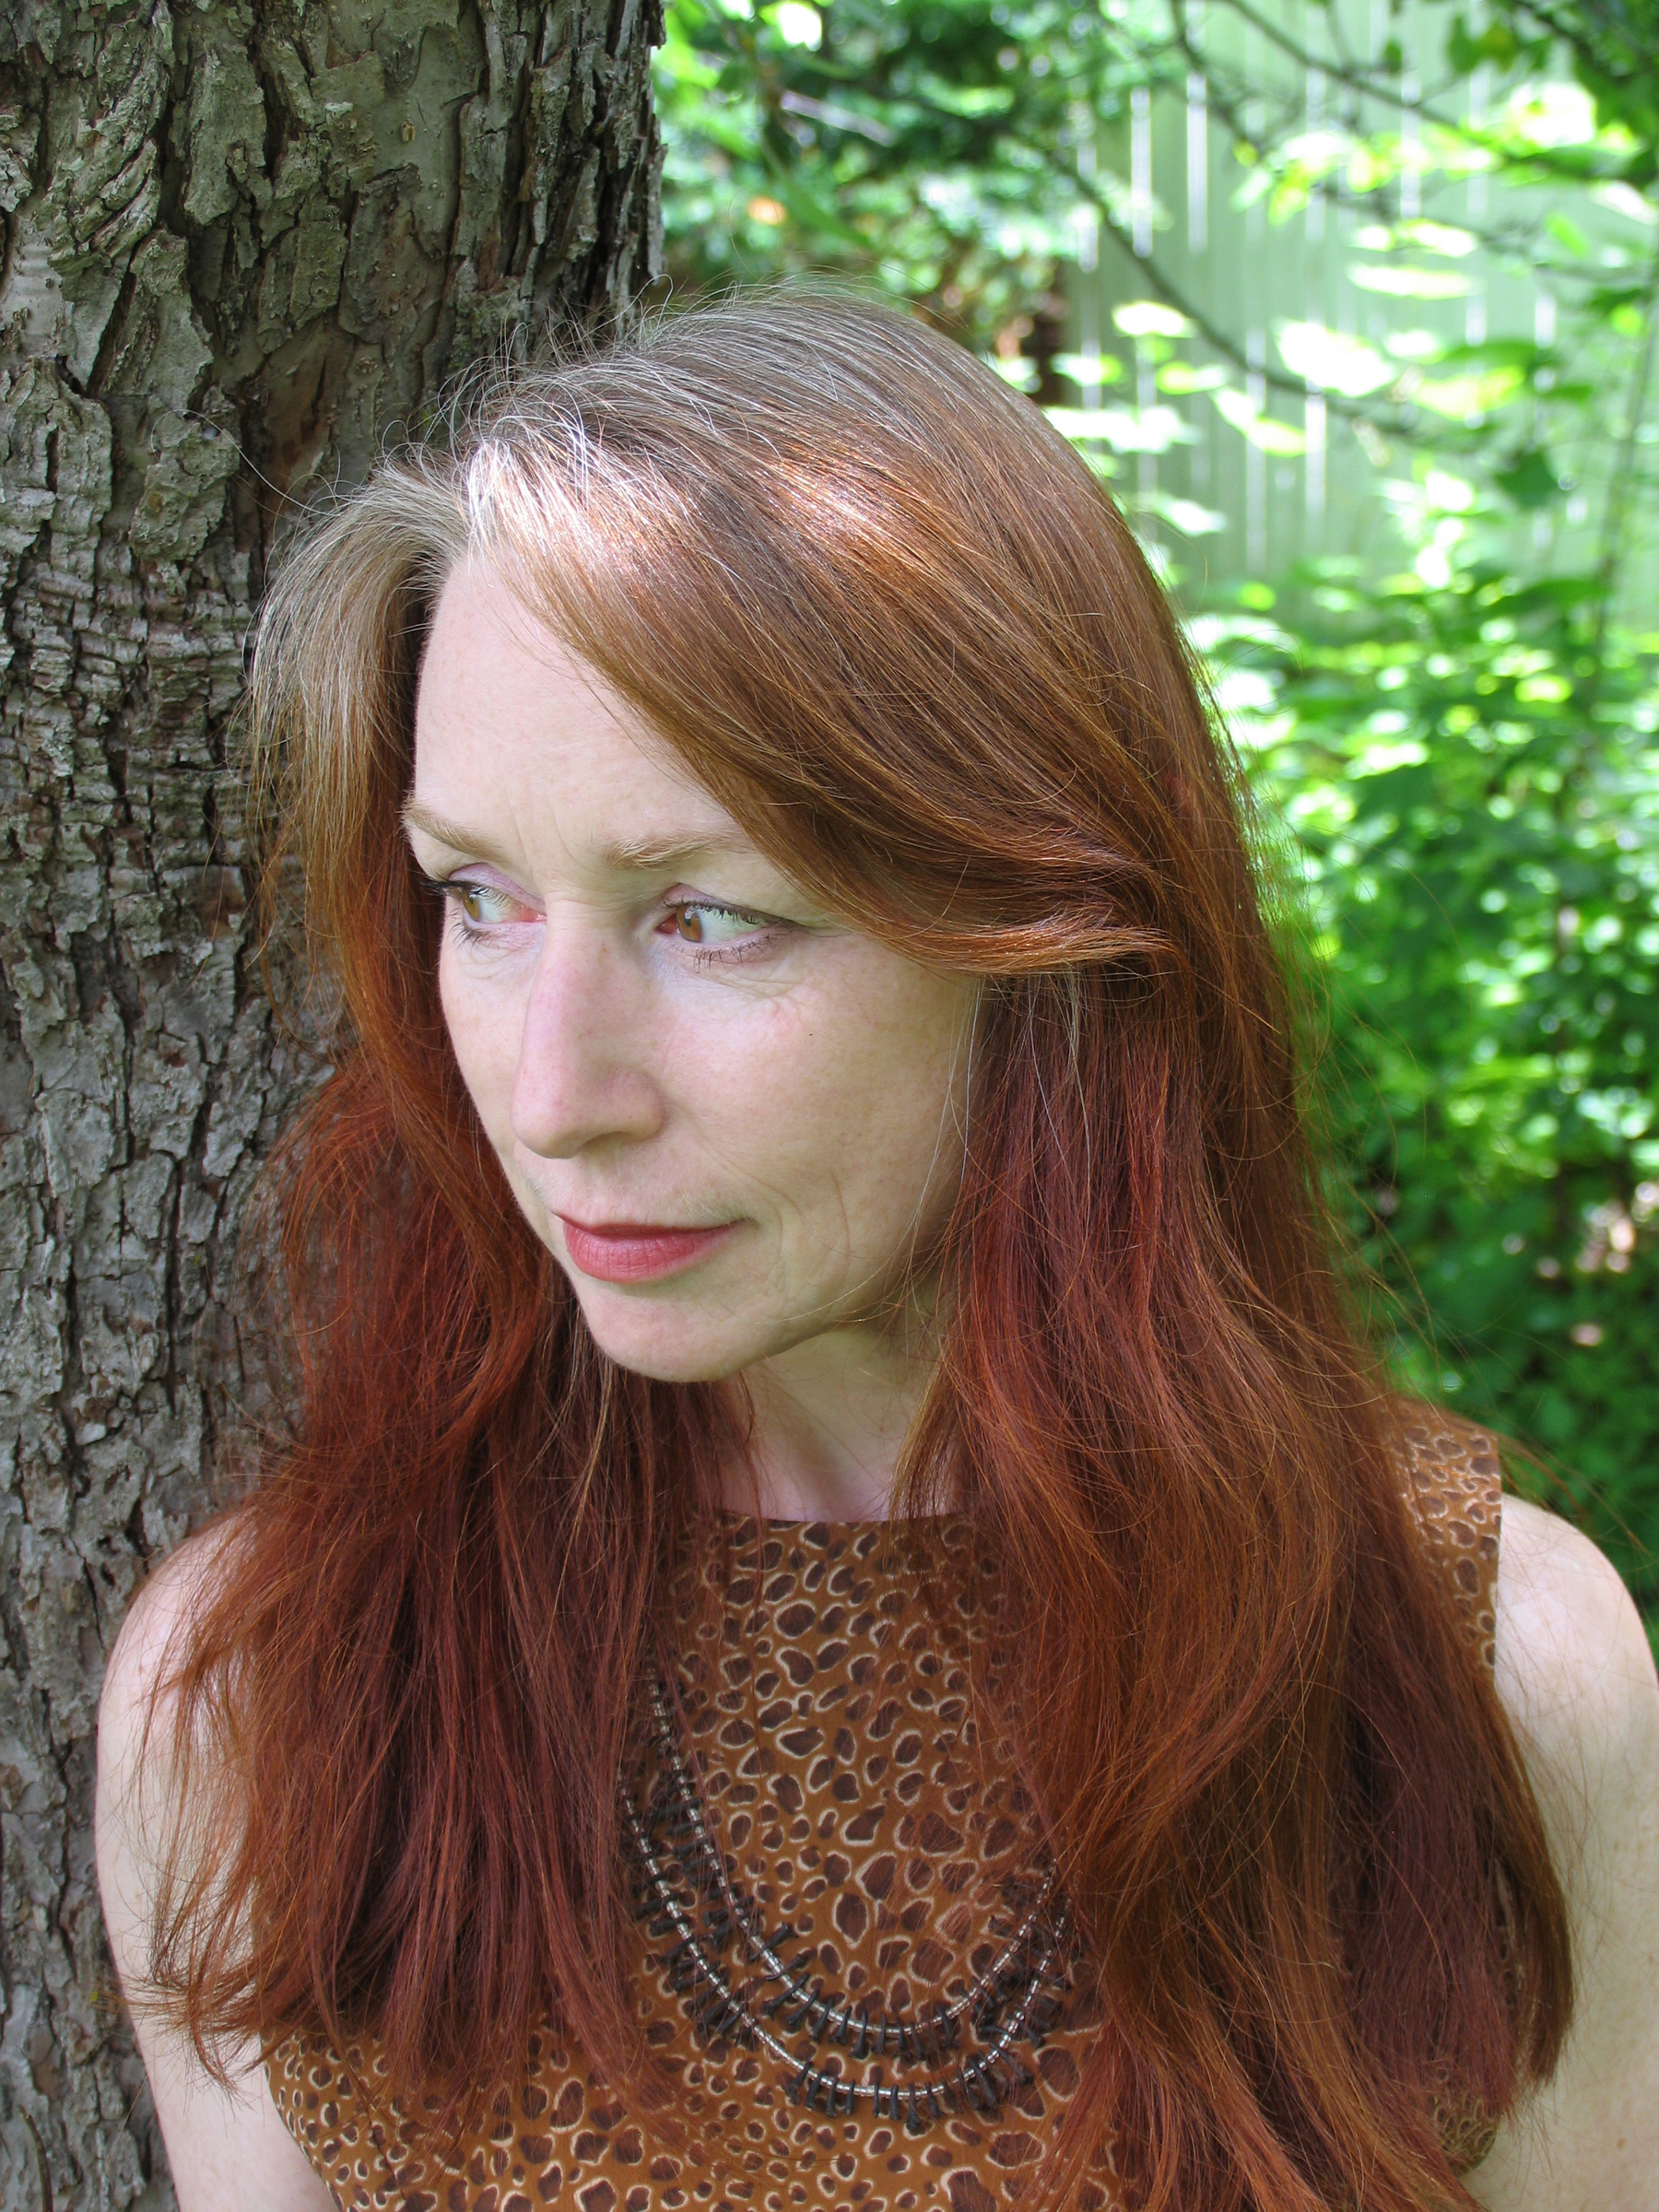 Kathline Carr , writer and visual artist, is the author of  Miraculum Monstrum , (Red Hen Press 2017), winner of the 2015 Clarissa Dalloway Book Prize. Carr's work has appeared in many publications, including  Calyx, Alexandria Quarterly, Connecticut Review, Entropy, Yew Journal;  she has exhibited widely in New England, New York City, and Canada, and is represented by Fountain Street Gallery in Boston, MA. Carr received her BFA in Creative Writing from Goddard College, VT with concentrations in visual art and feminist philosophy, an MFA in Visual Arts from The Art Institute of Boston. She lives in the Berkshires. www.kathlinecarr.com